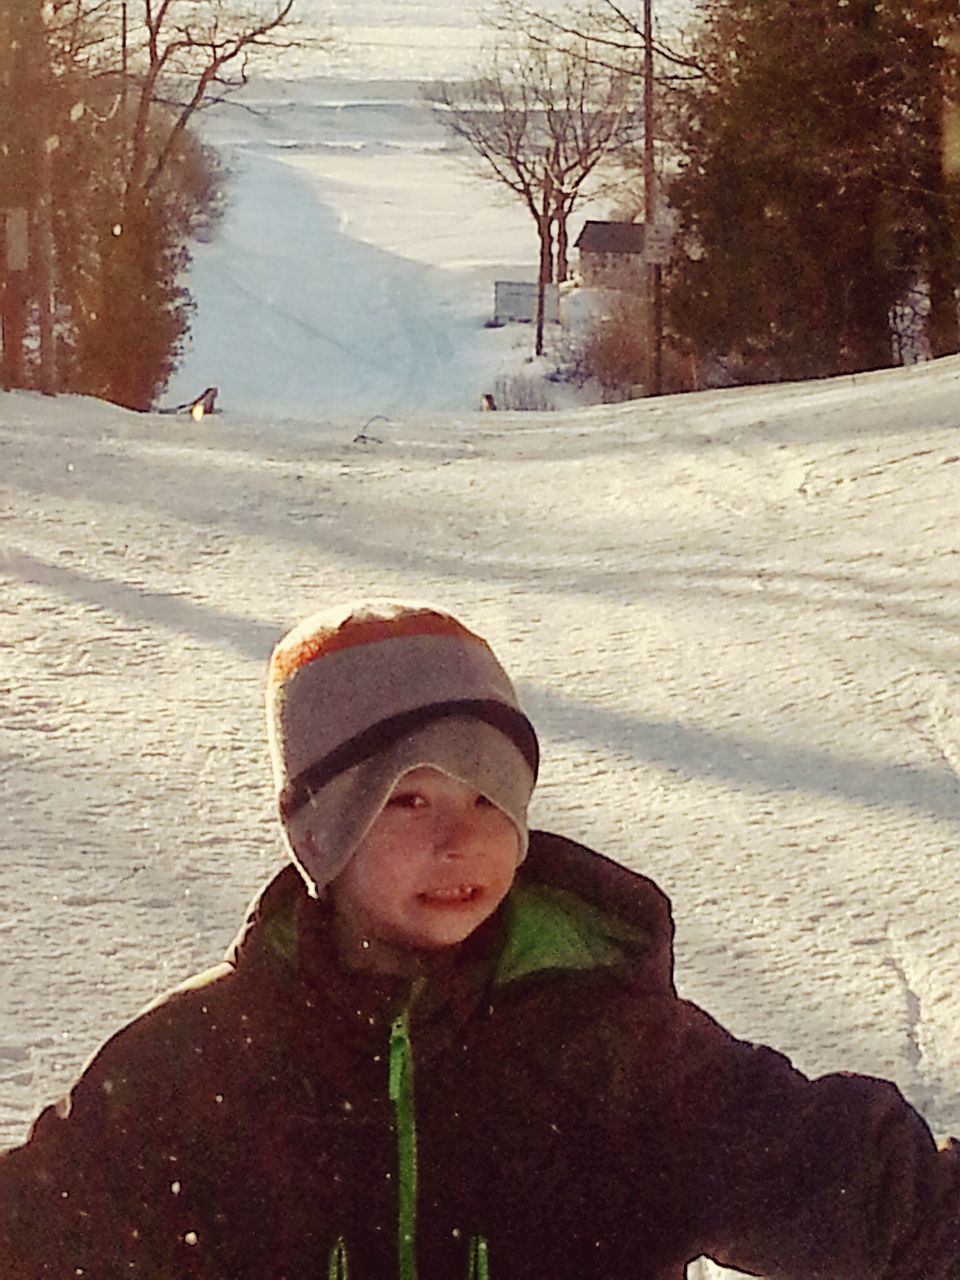 winter, cold temperature, snow, childhood, real people, one person, warm clothing, weather, boys, leisure activity, outdoors, day, nature, tree, lifestyles, full length, child, one boy only, snowing, people